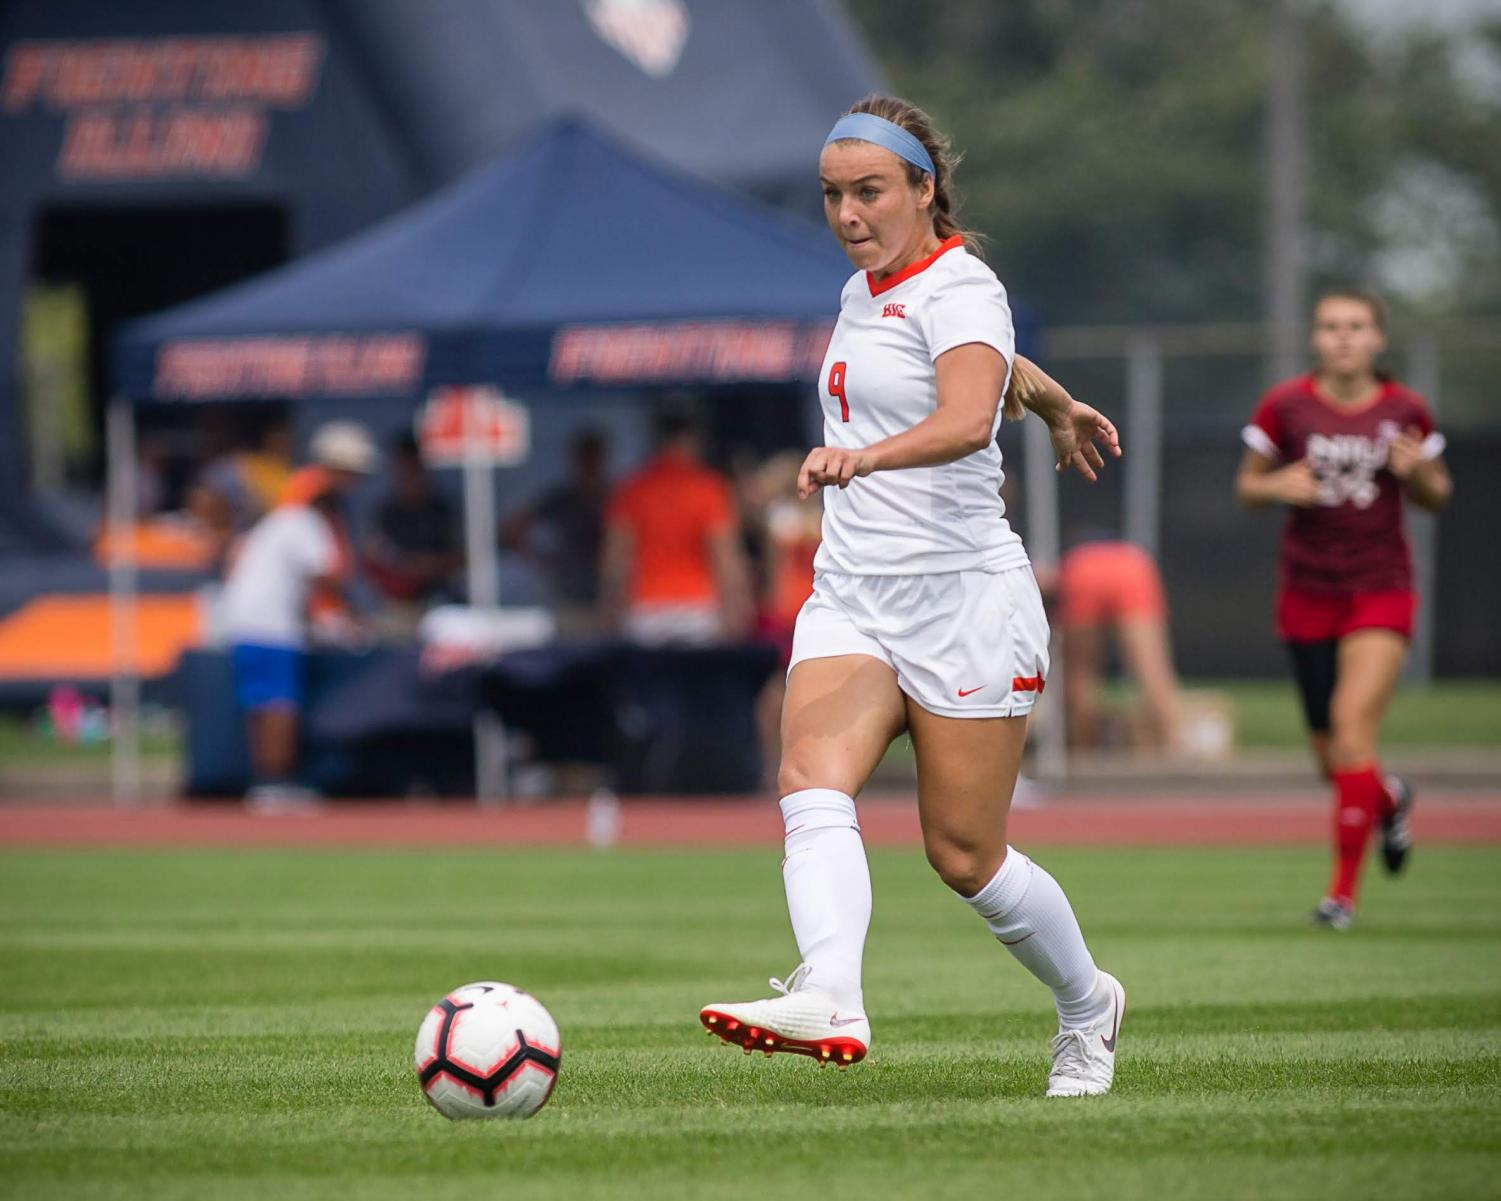 Illinois midfielder Lauren Ciesla (9) passes the ball during the game against Northern Illinois at the Illinois Soccer Stadium on Sunday, Aug. 26, 2018. The Illini won 8-0.